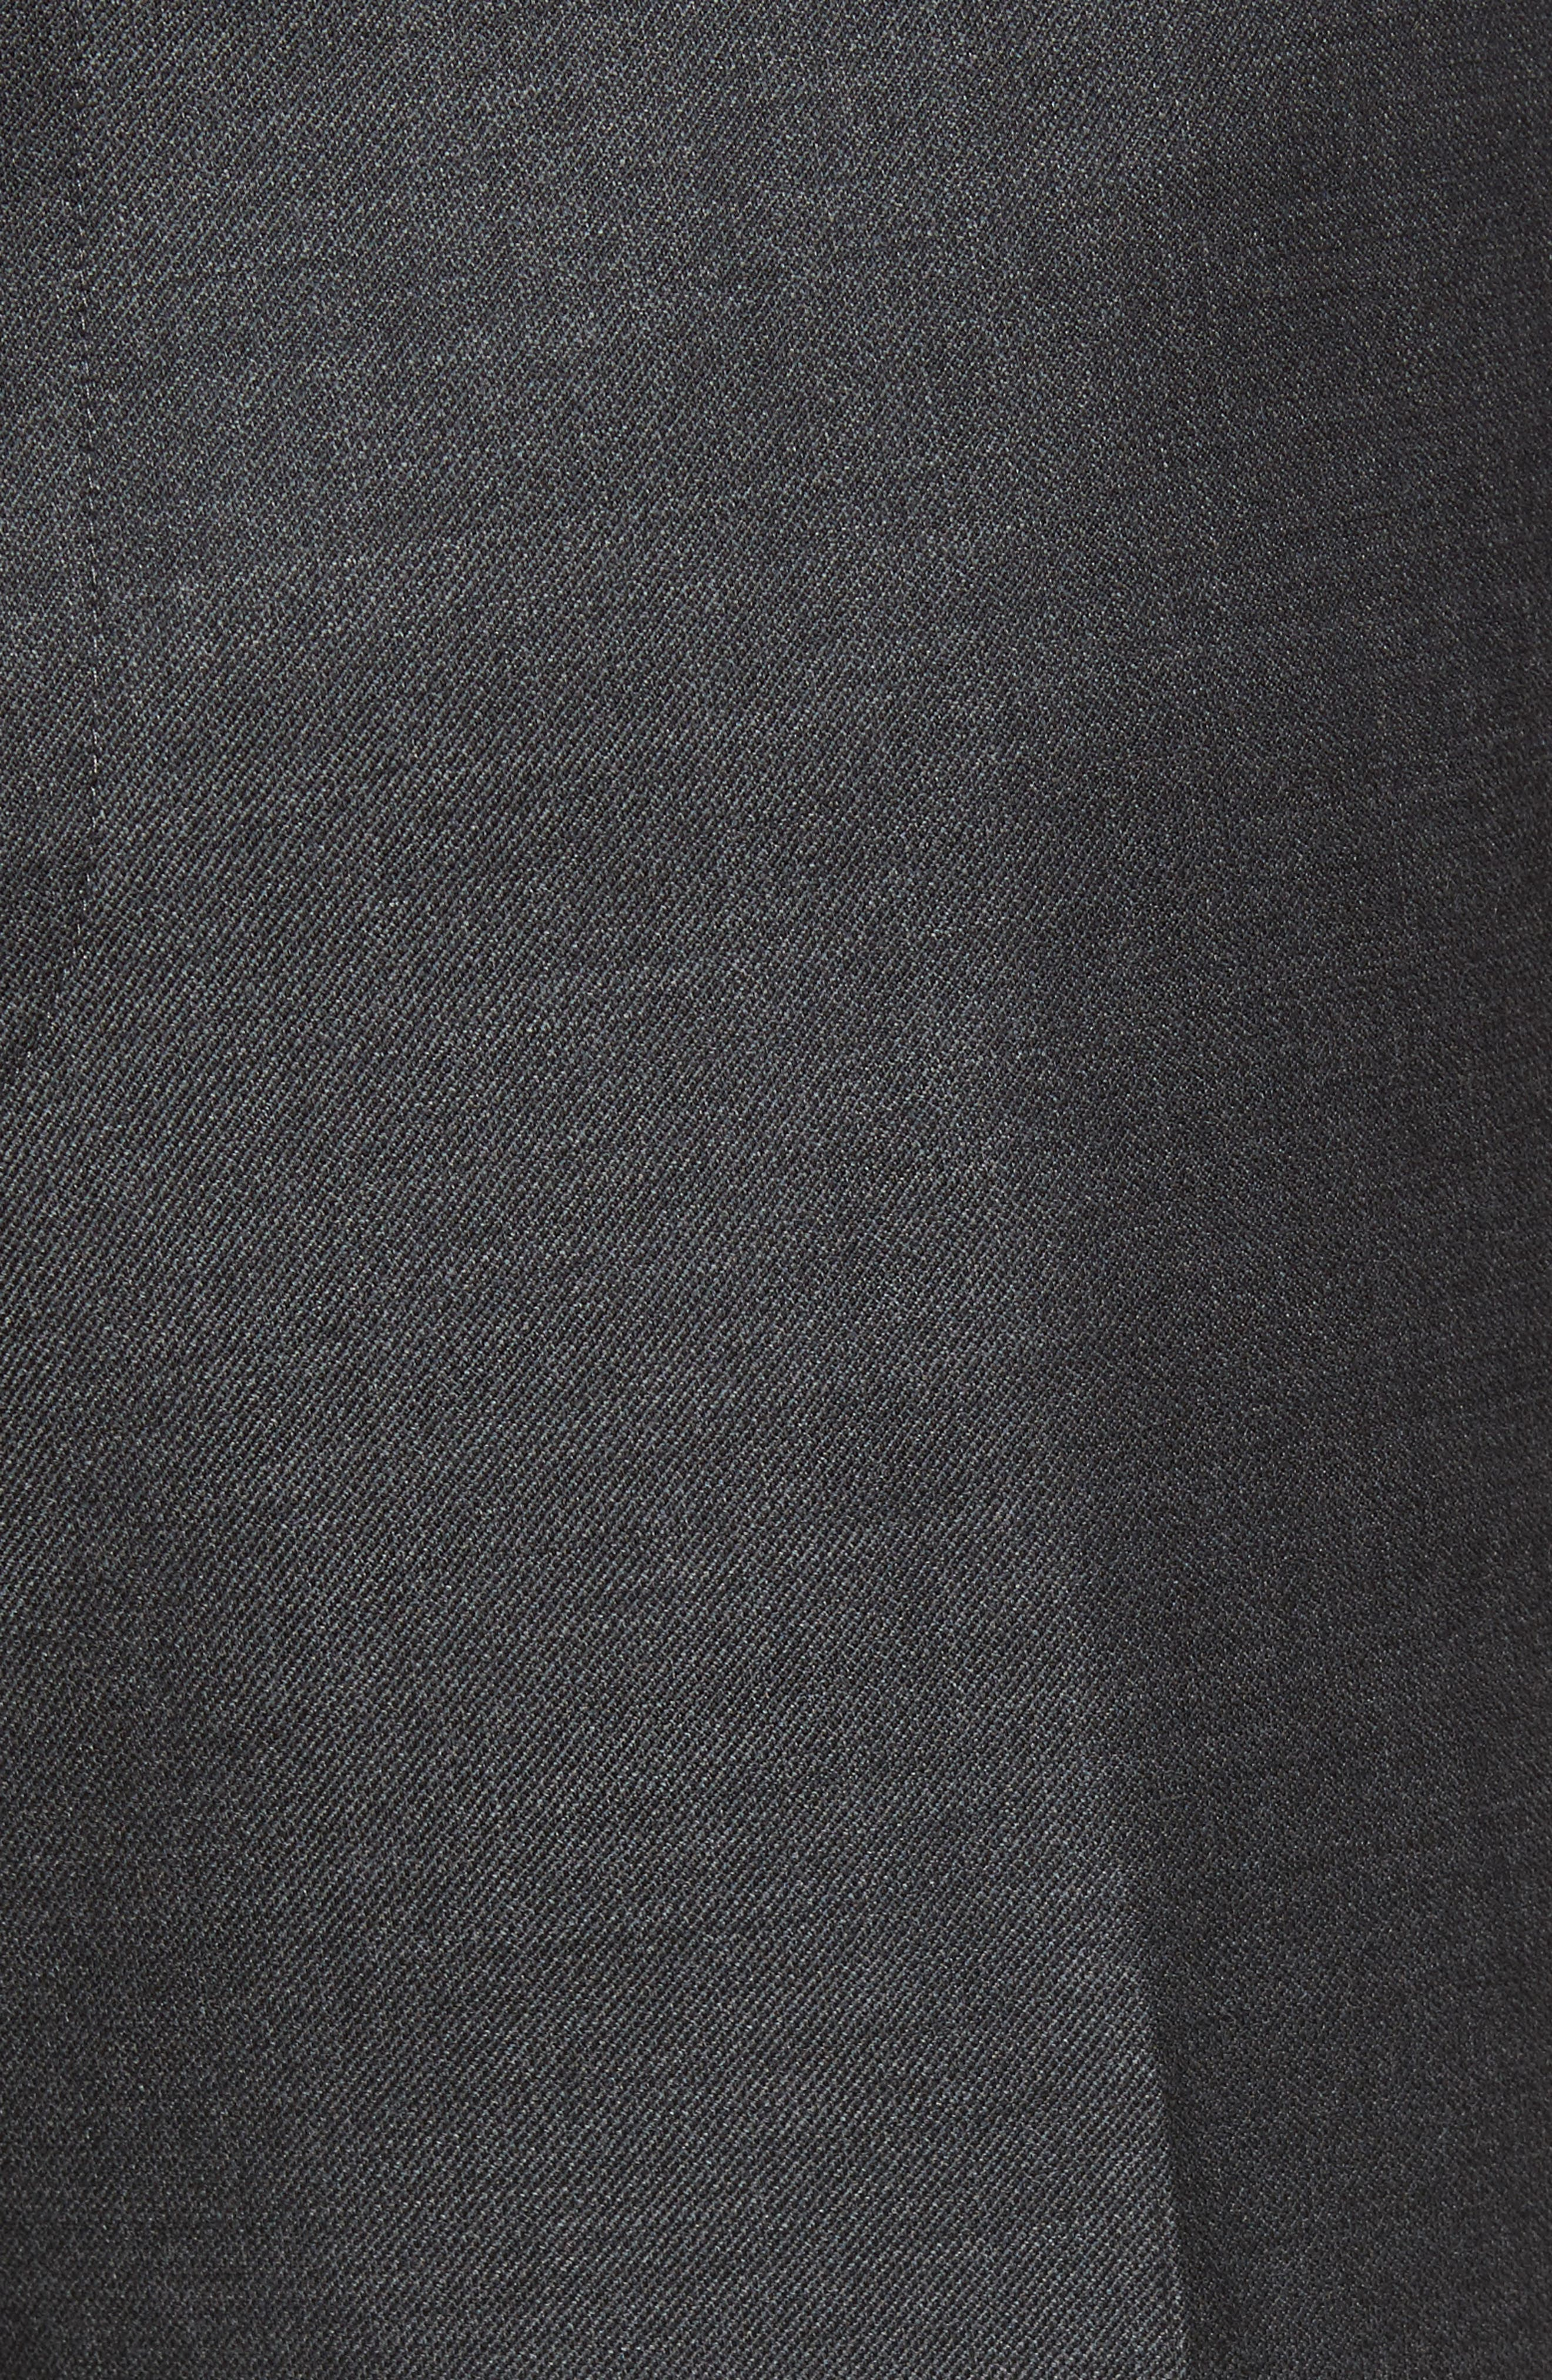 Flat Front Sharkskin Wool Trousers,                             Alternate thumbnail 5, color,                             Charcoal